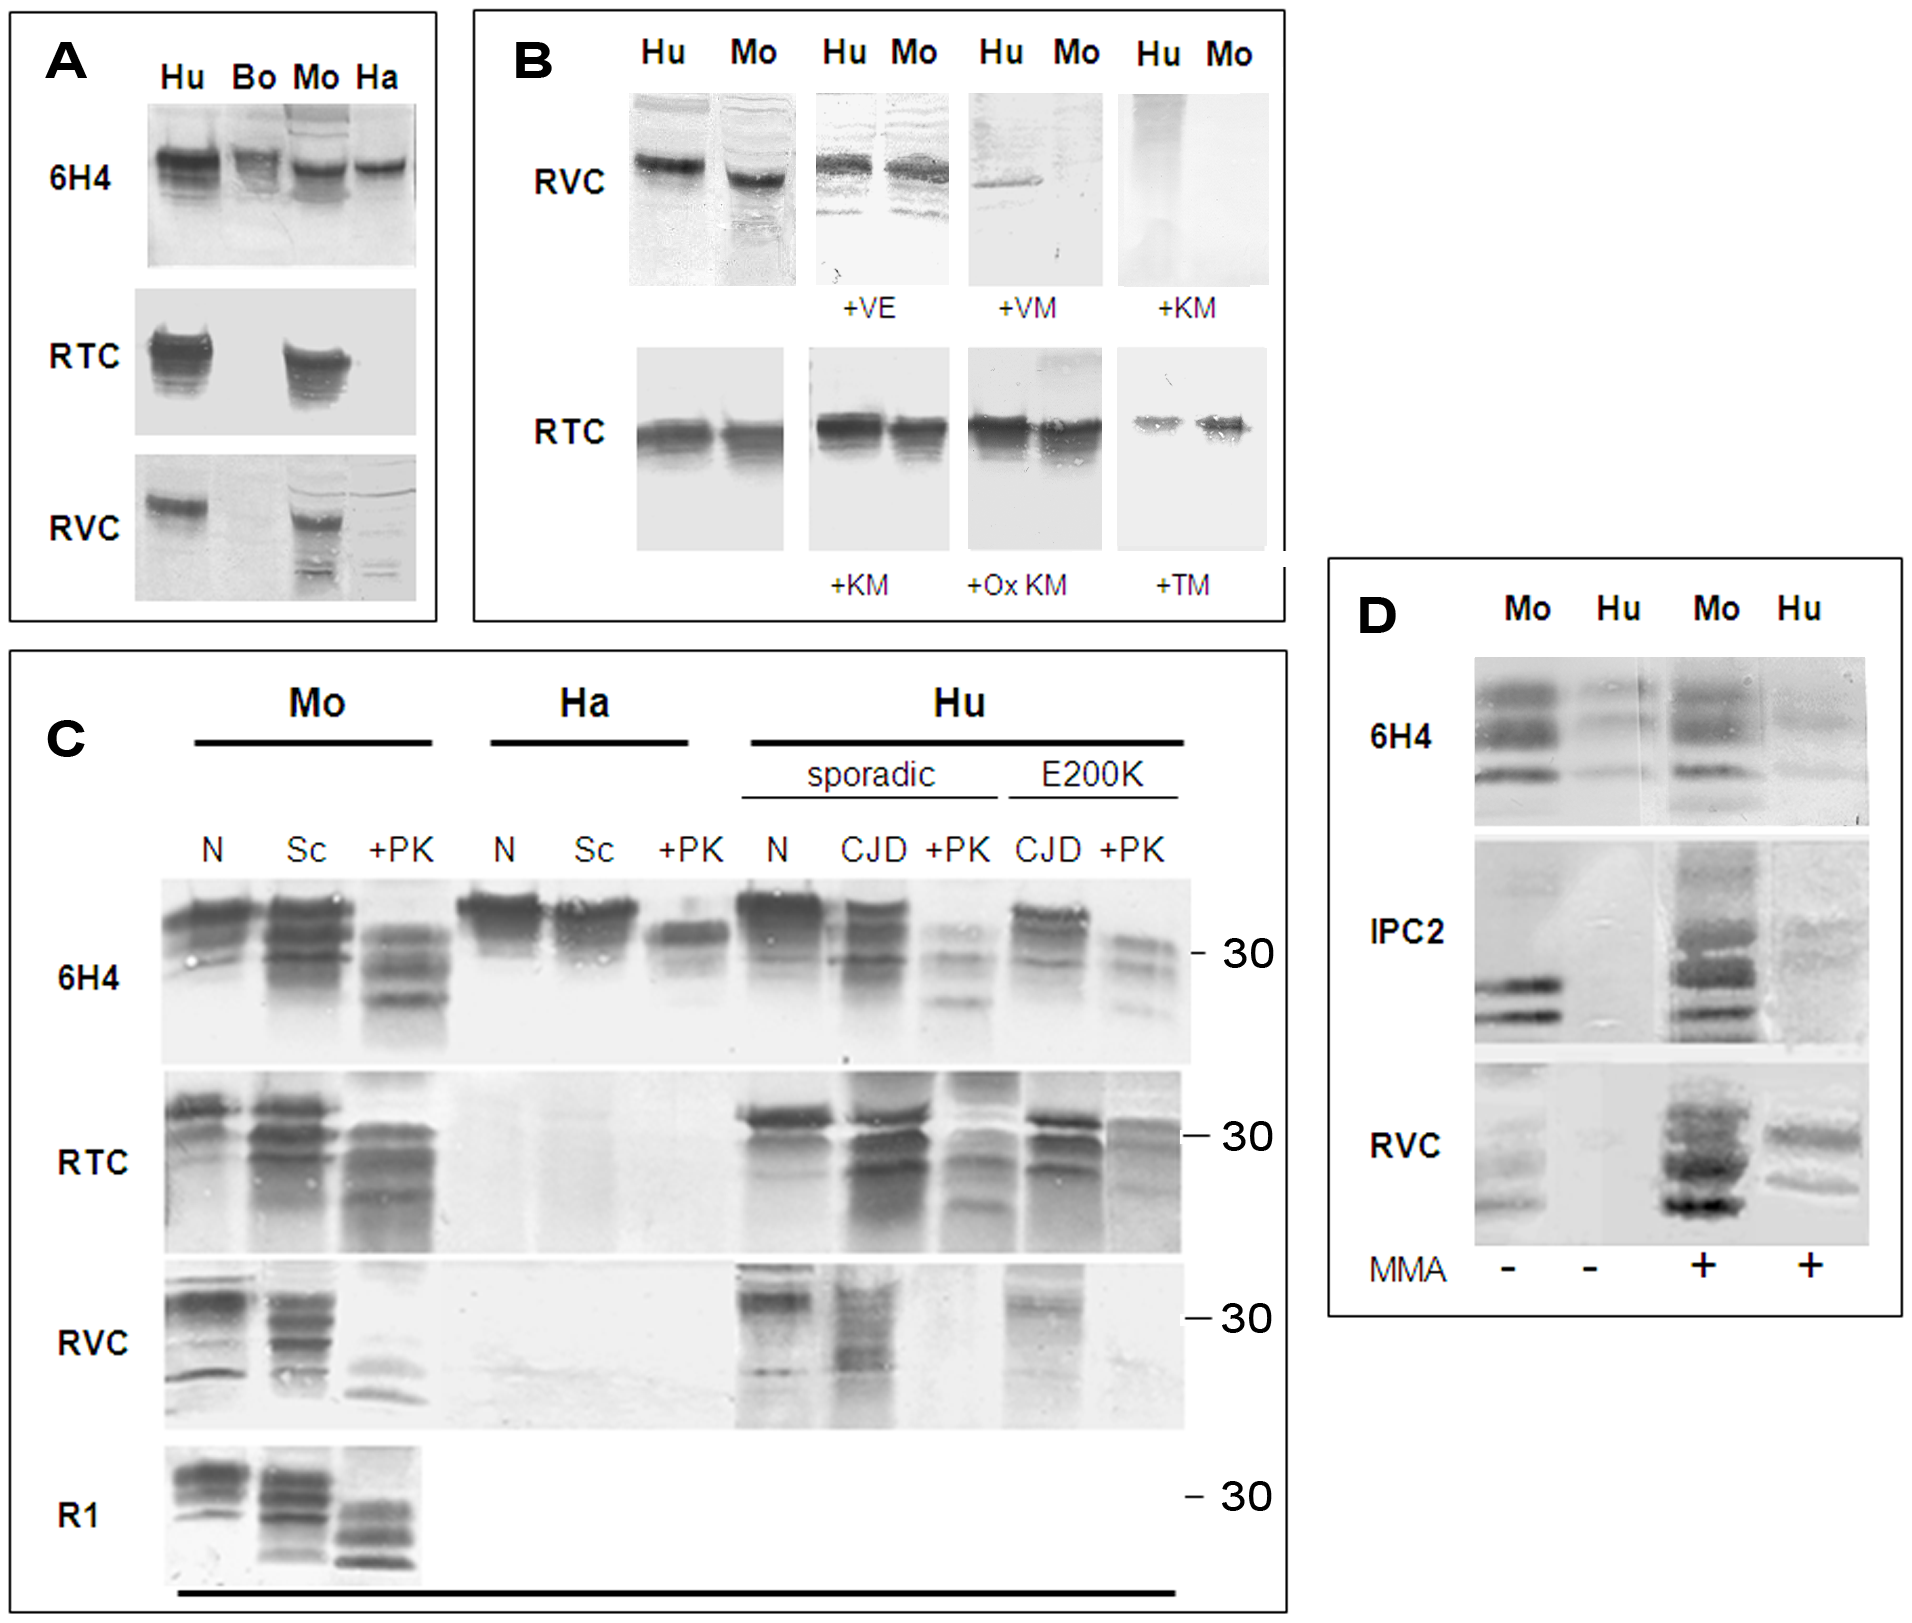 Testing for the activity of anti-Helix-3 antibodies: pAb RVC does not recognize PrP<sup>Sc</sup> generated in prion infected brains.